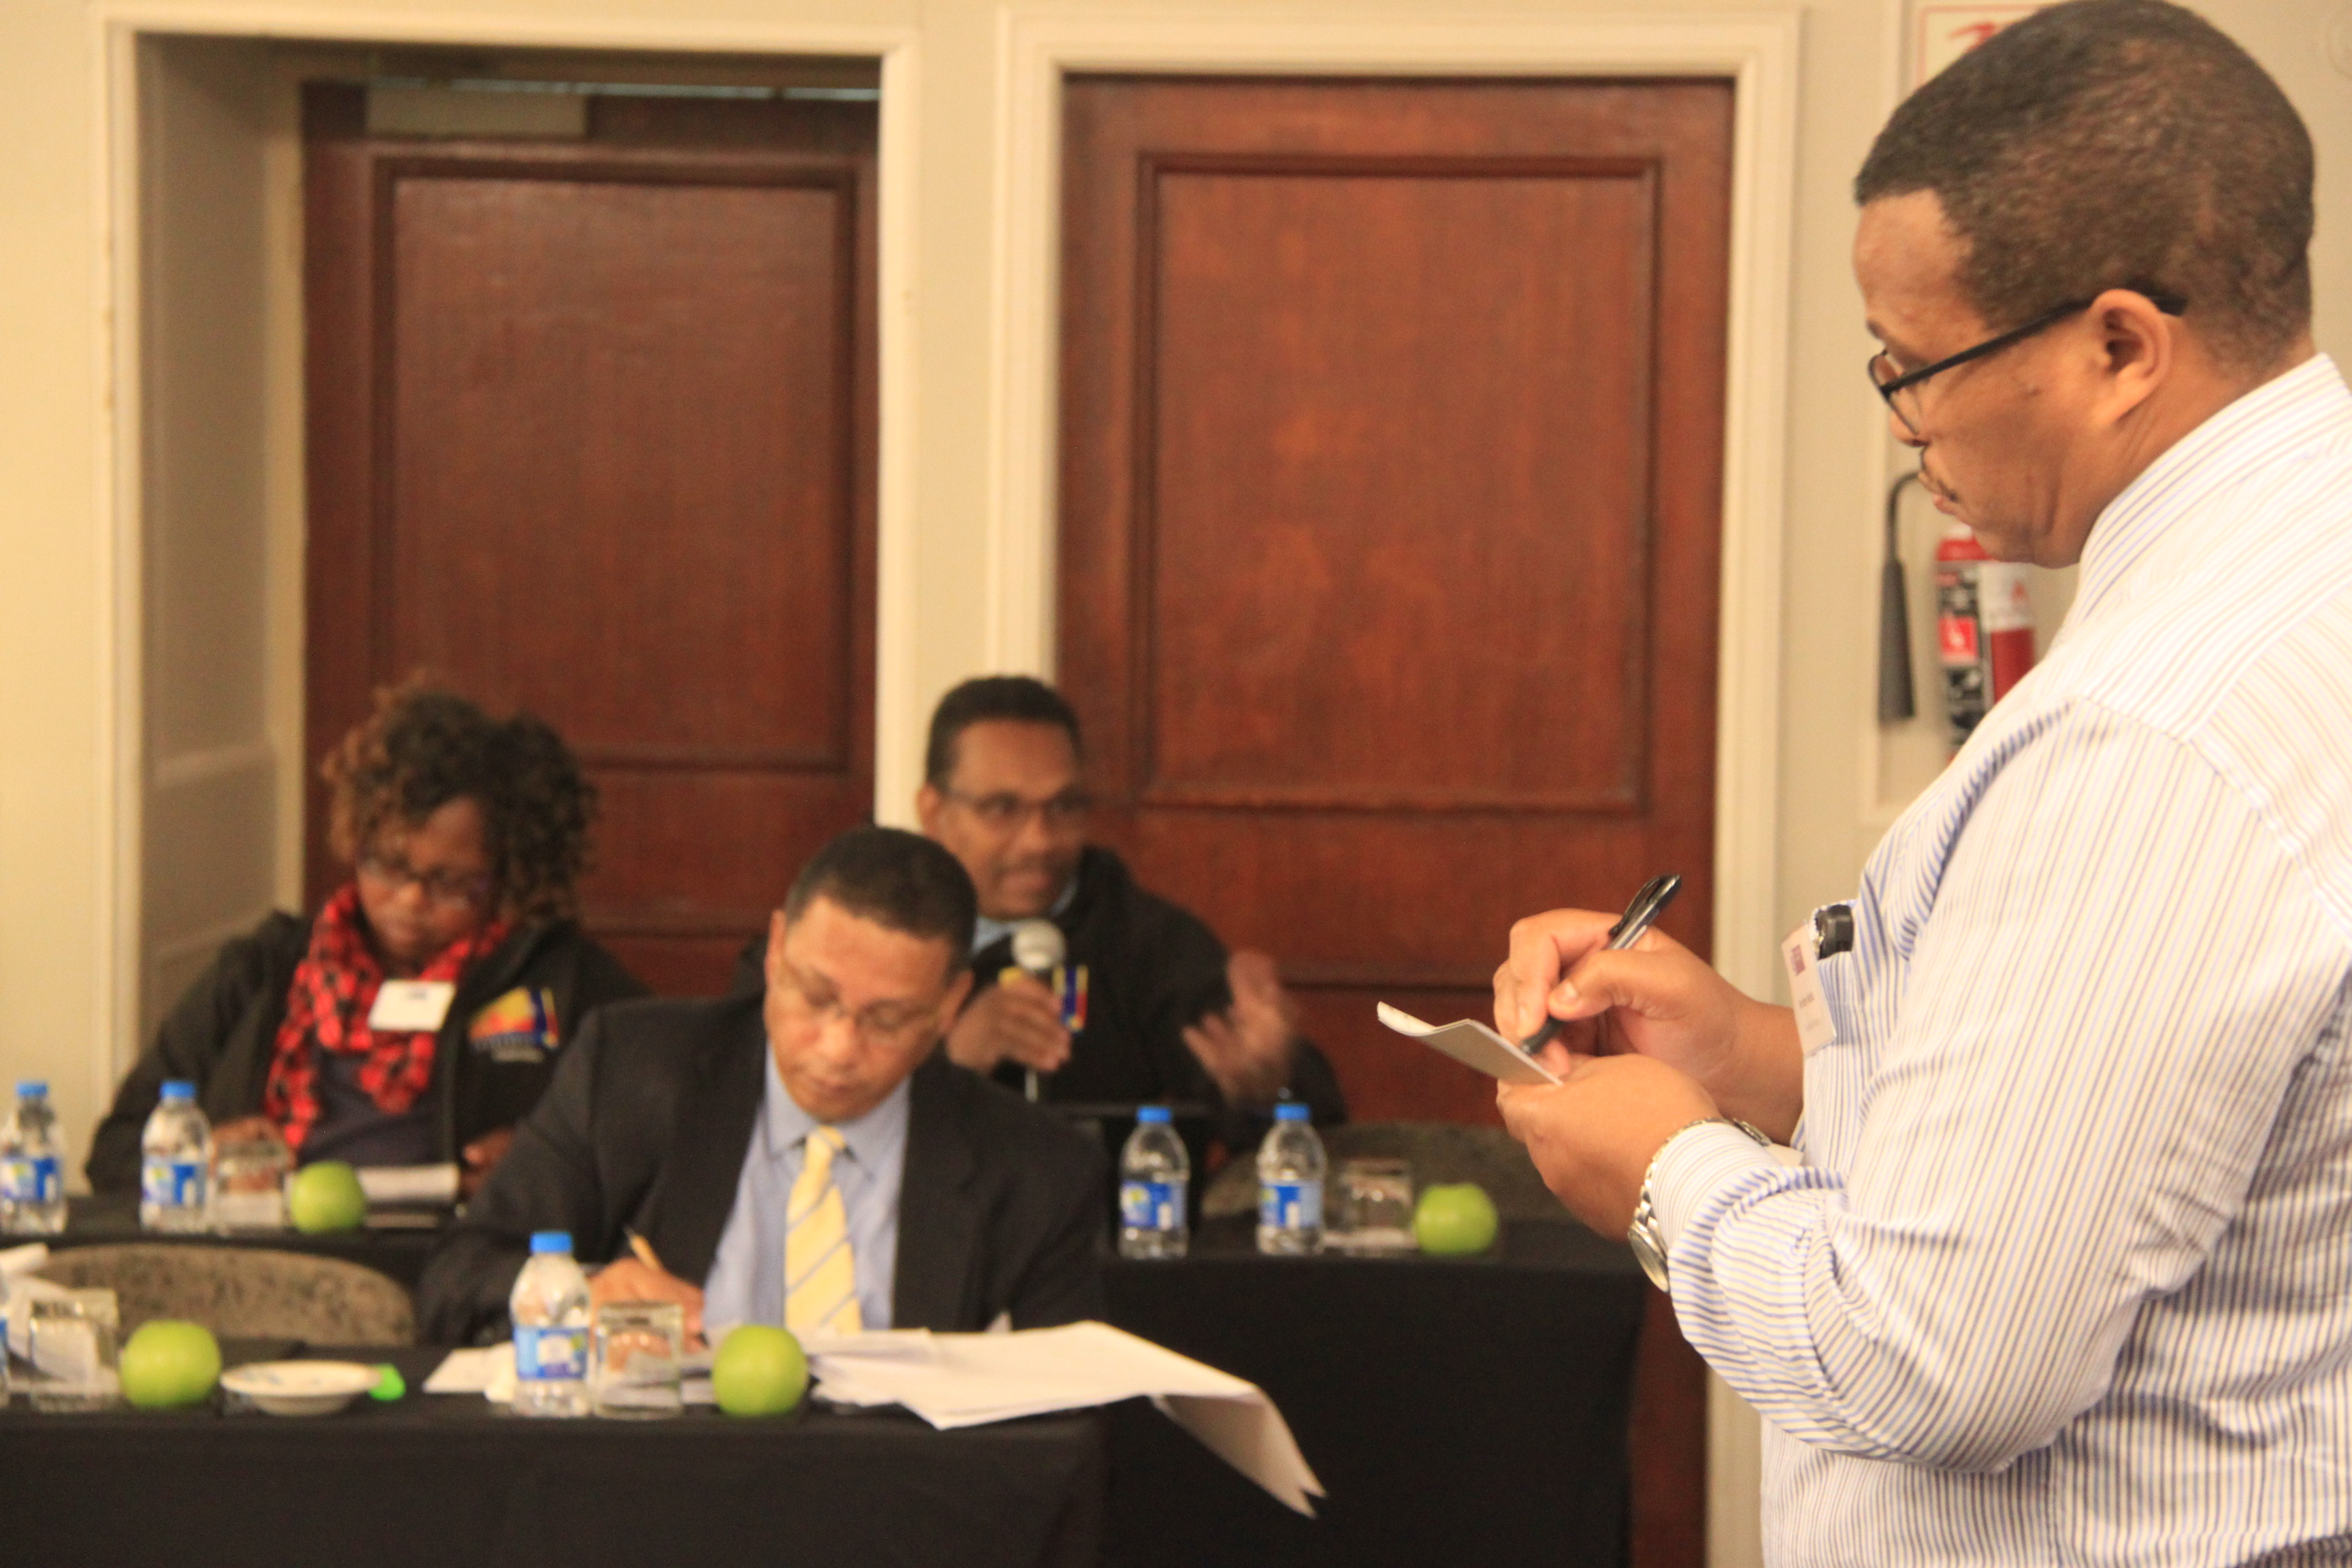 Minister Ivan Meyer (centre) and Mr Harry Malila from the Provincial Treasury during a panel discussion